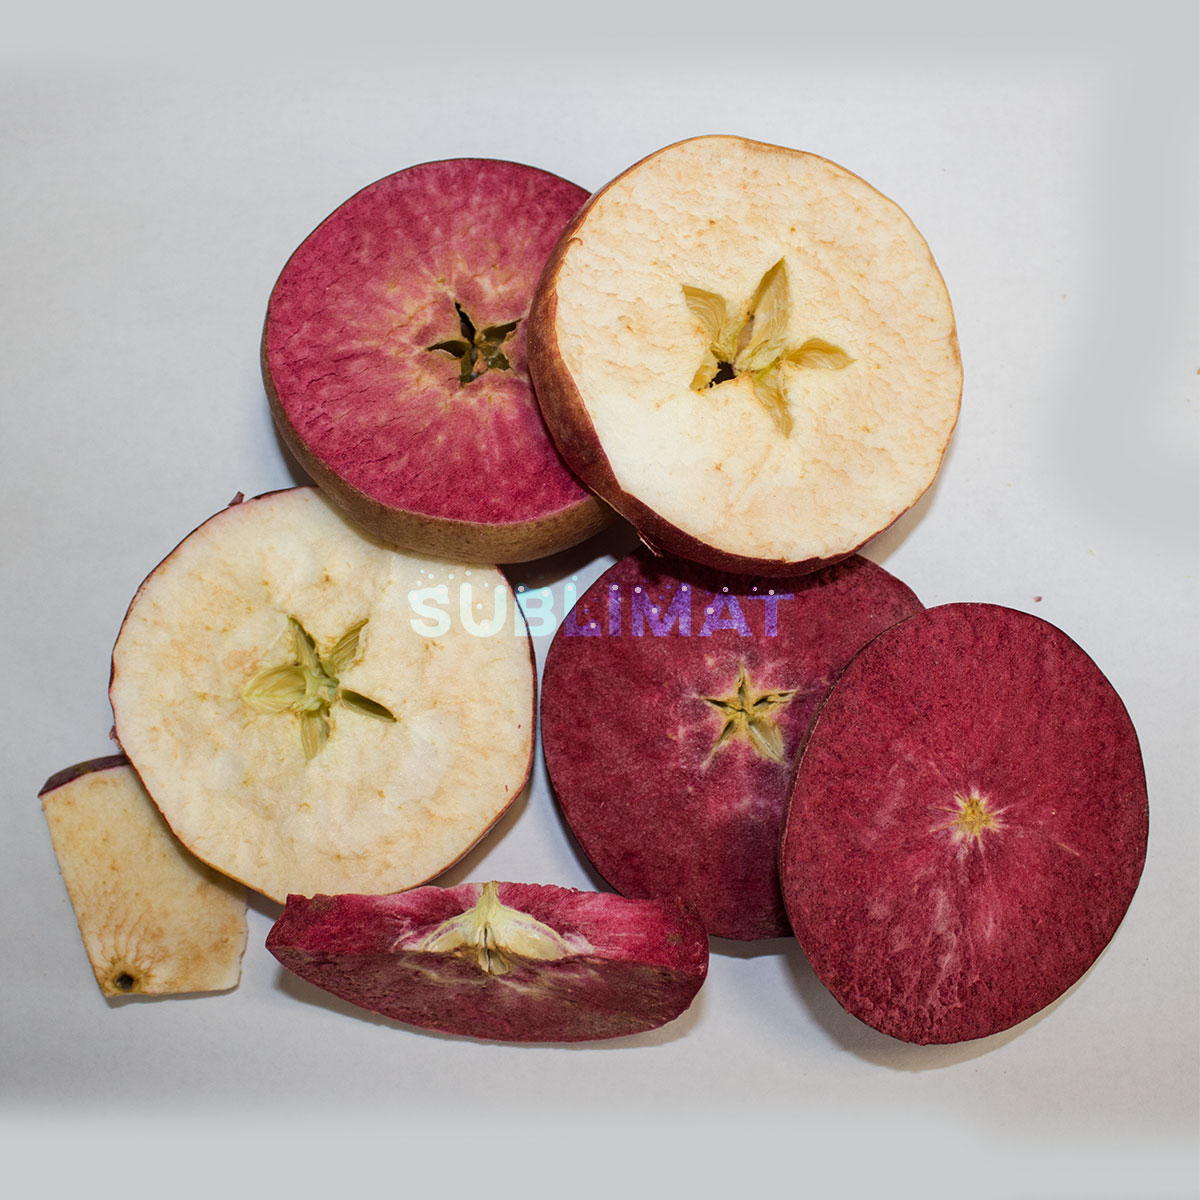 Freeze-dried red apple slices